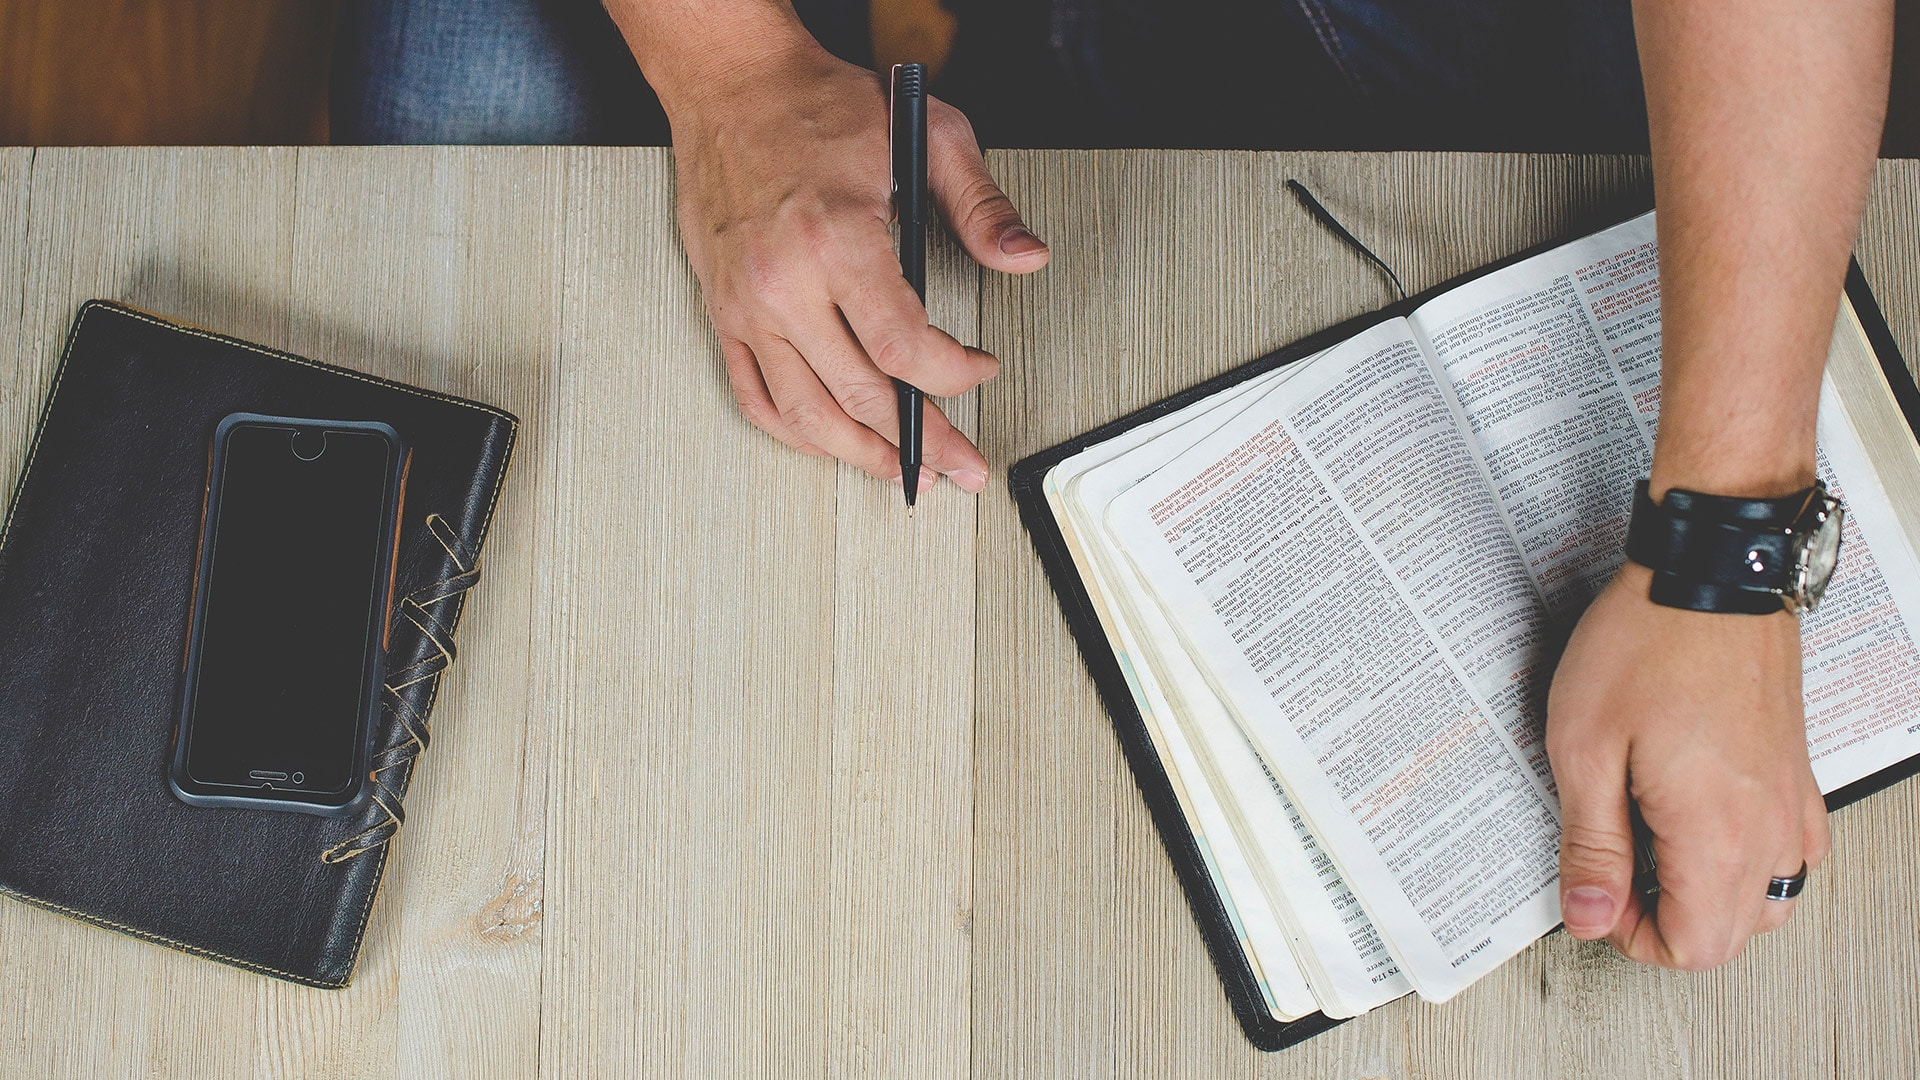 5 Easy Ways to Add Excitement to Your Sermons